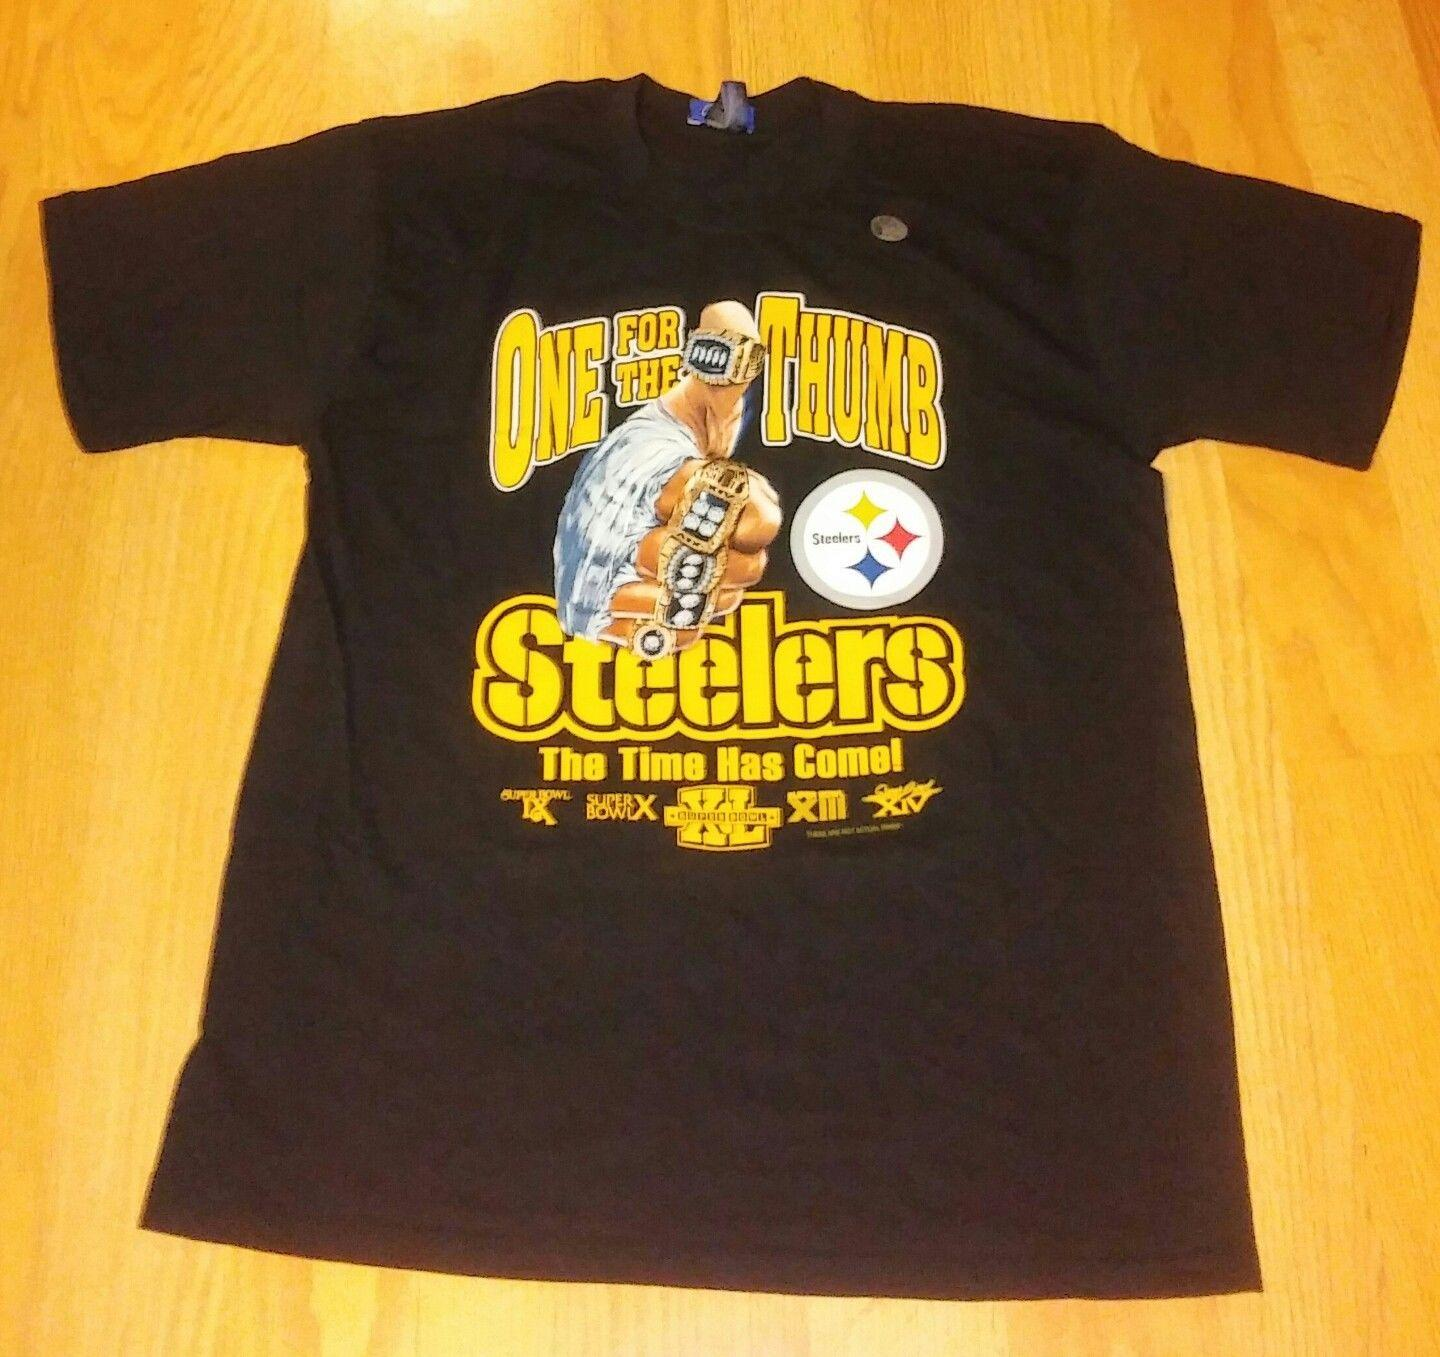 Pittsburgh Steelers XLII One For The Thumb Team T Shirt L NWOT Hot 2018  Summer Newest Men S T Shirt Fashion Designable T Shirts Buy Funny Shirts  From ... e021ae67d